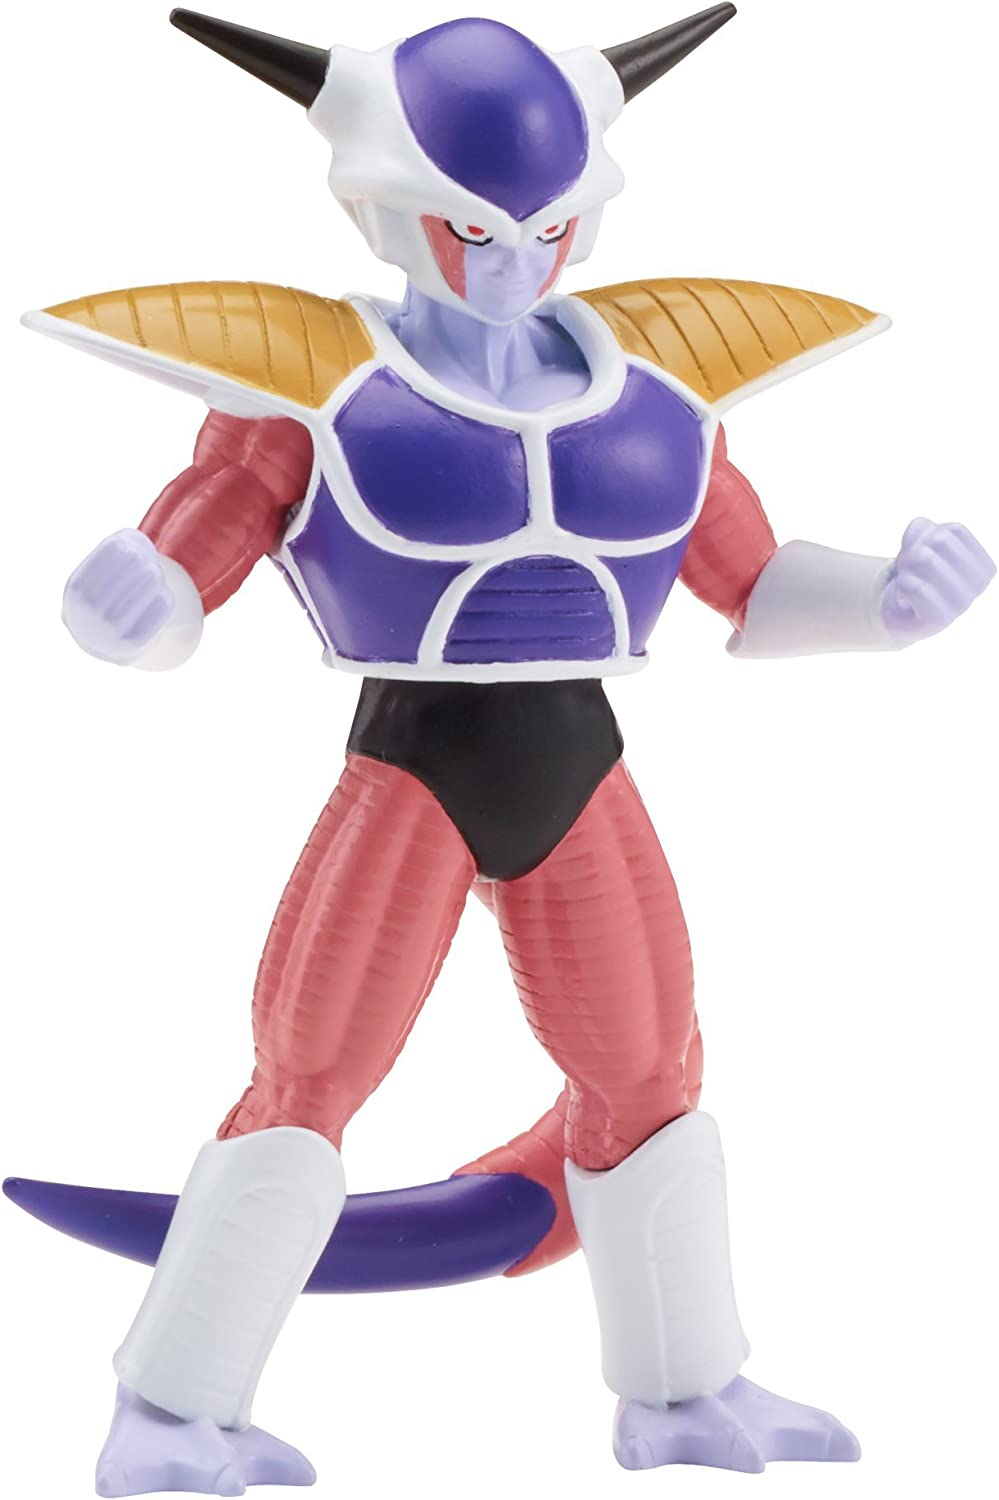 Dragon Ball Super - Power Up Action Figure (Frieza)